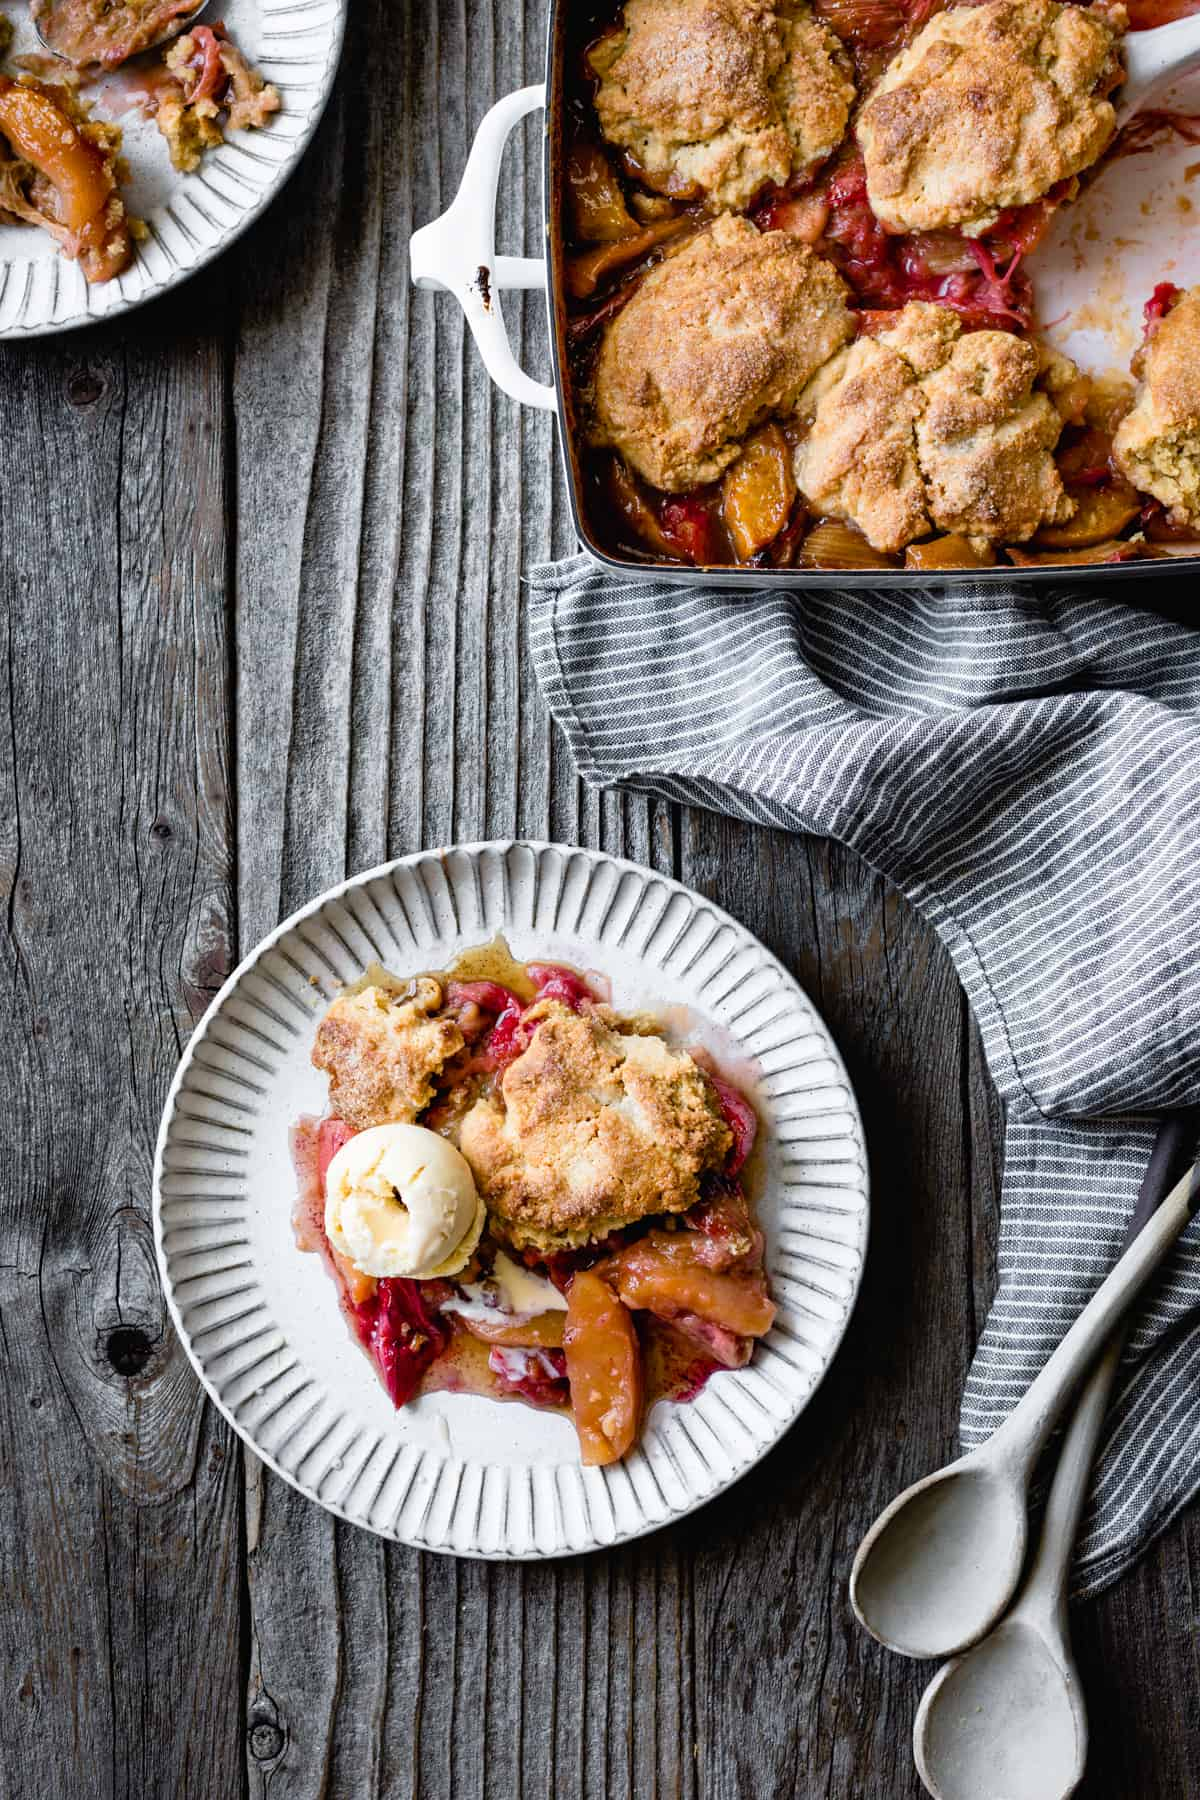 plate and pan of Gluten Free Apple Cobbler with Maple & Rhubarb